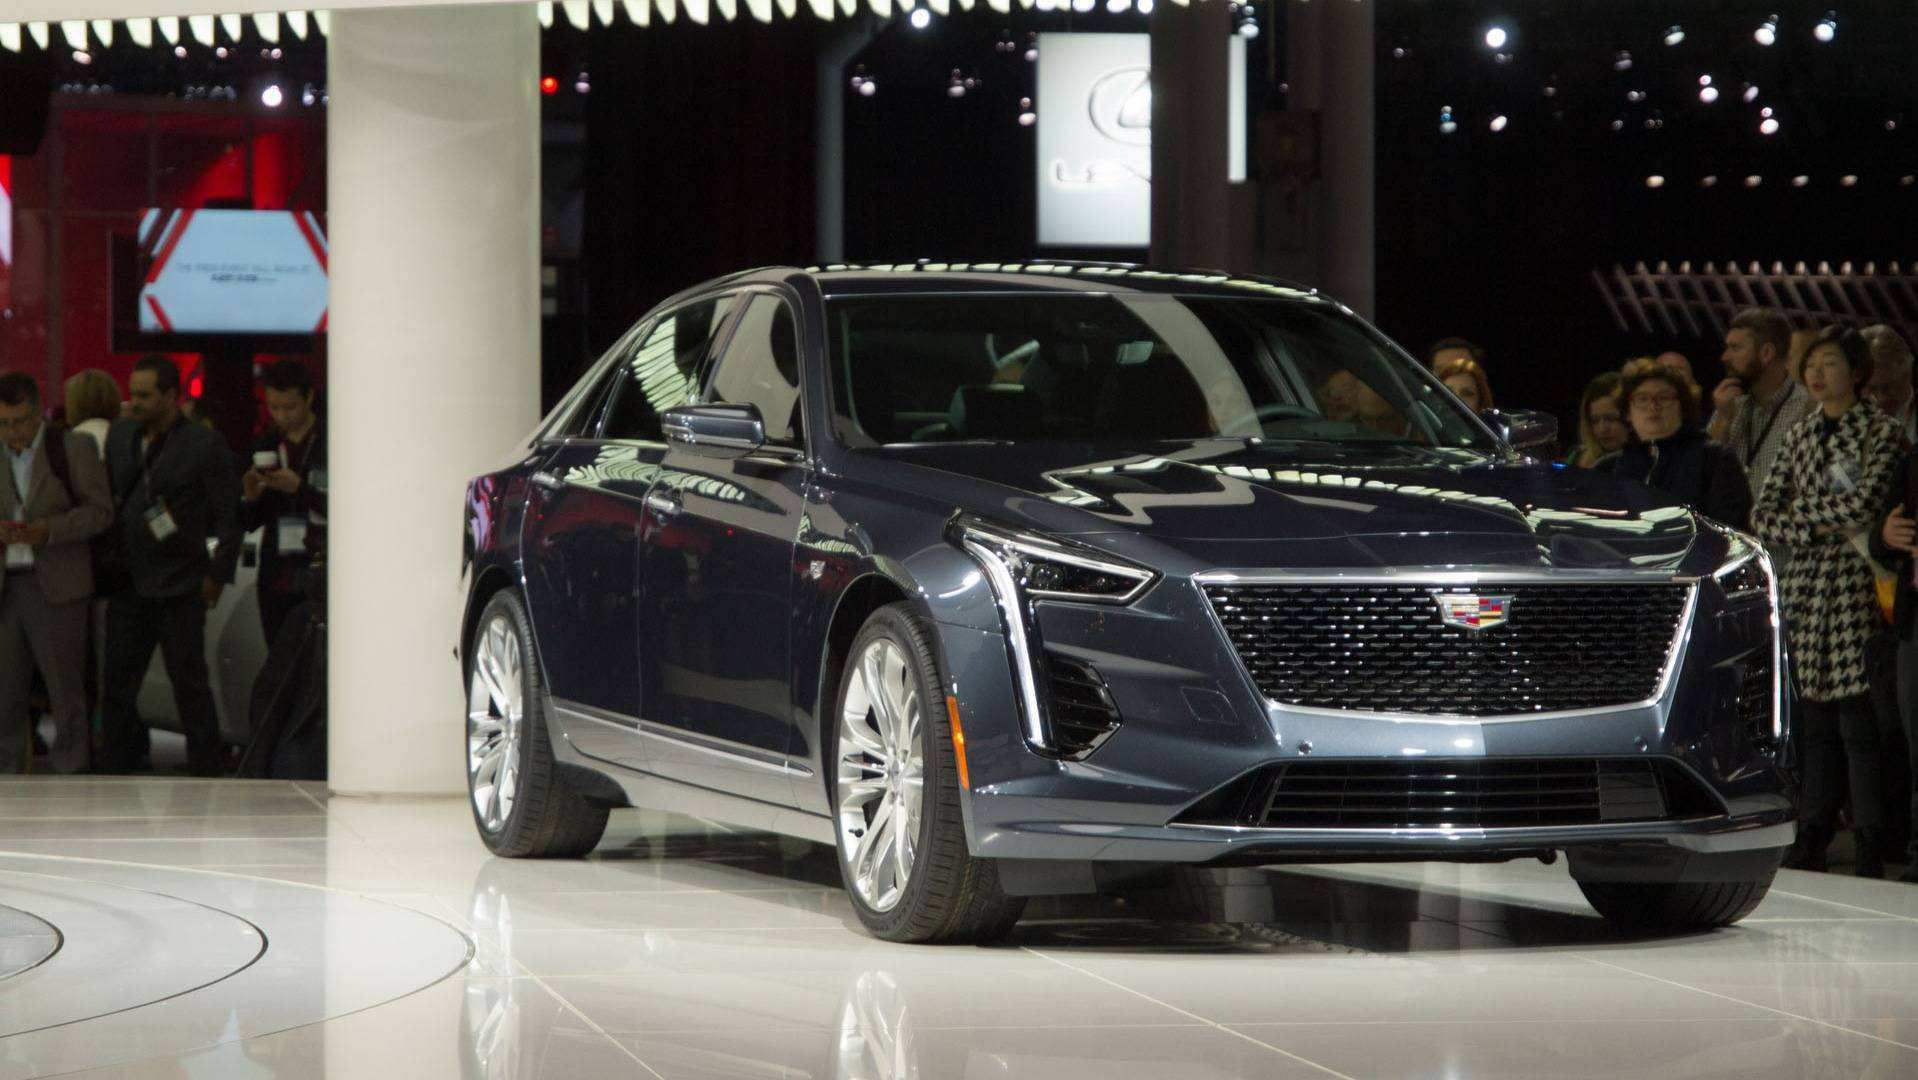 65 All New New Cadillac Ct6 V Sport 2019 Picture Release Date And Review Price with New Cadillac Ct6 V Sport 2019 Picture Release Date And Review